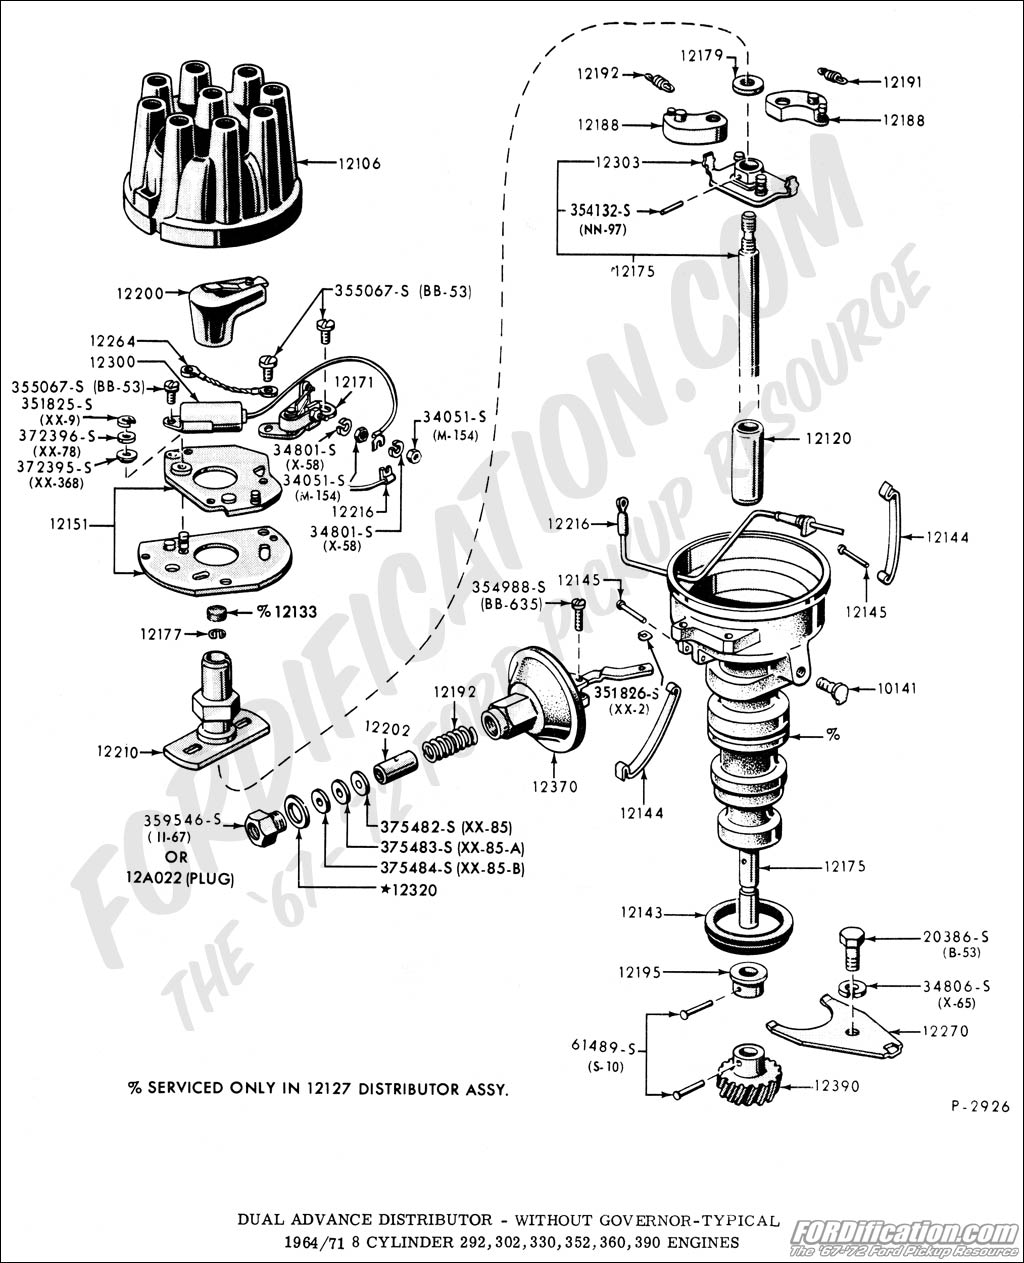 Alternator Wiring Diagram Ford 302 Library 1966 Truck For Diagrams And Vacuum Schematics Mustang Technical Drawings Section I Electrical